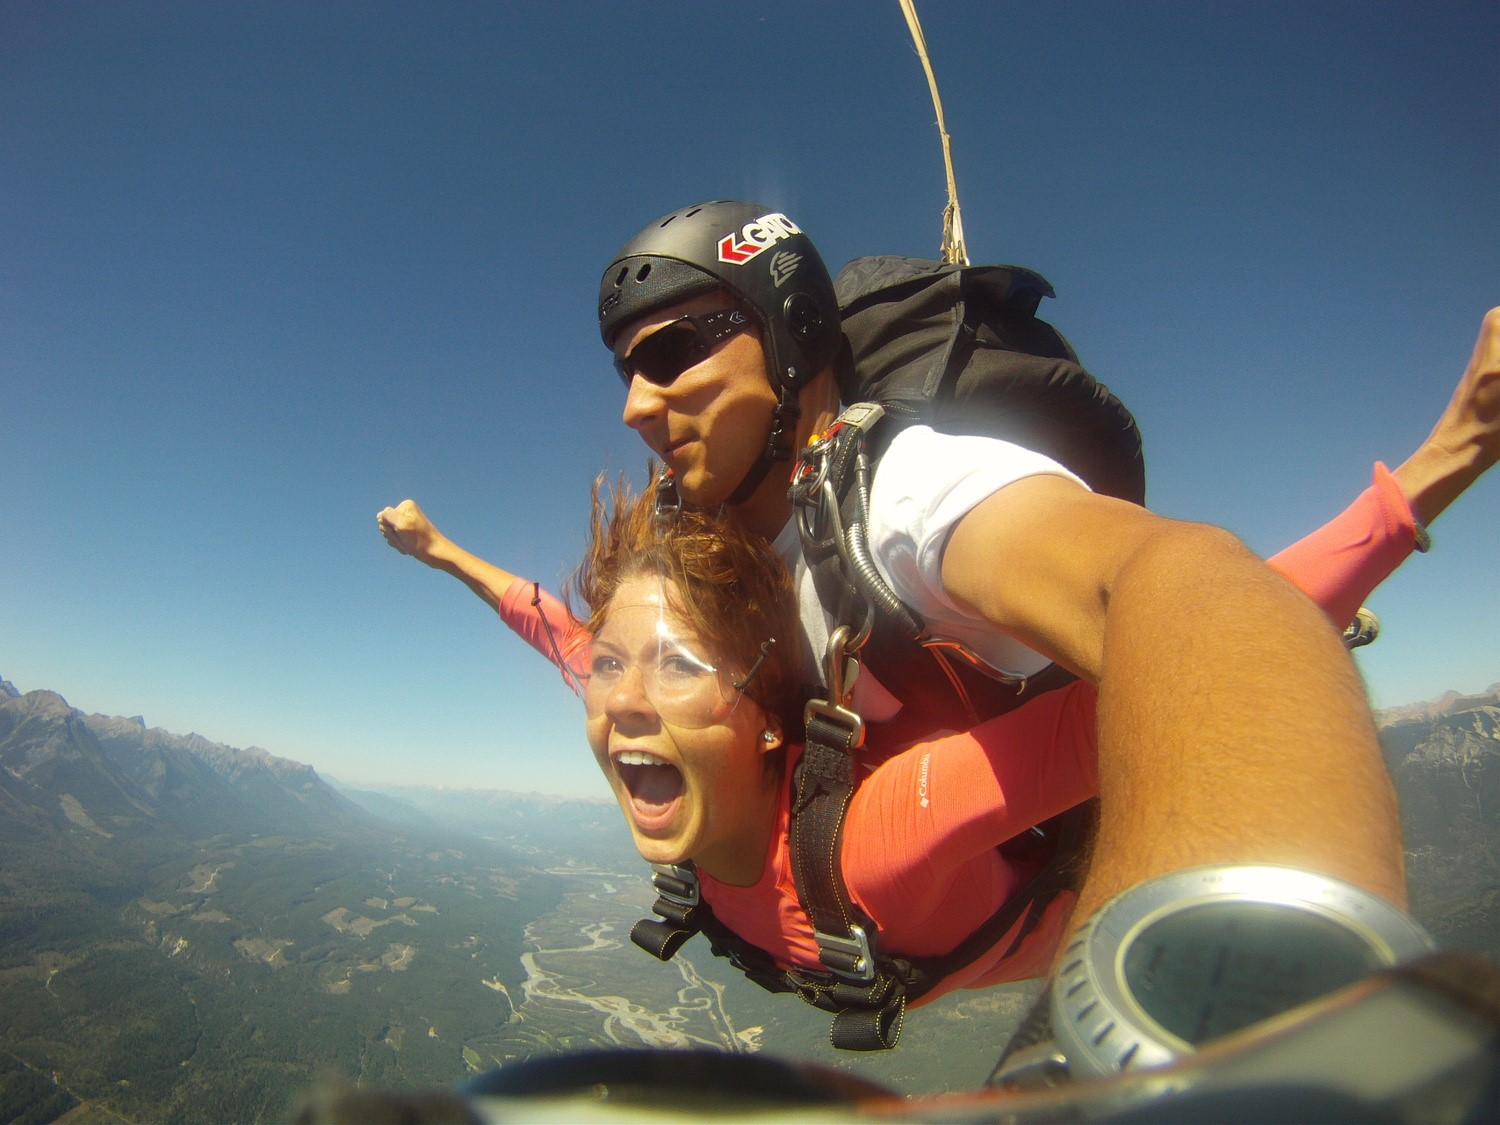 Skydiving British Colombia